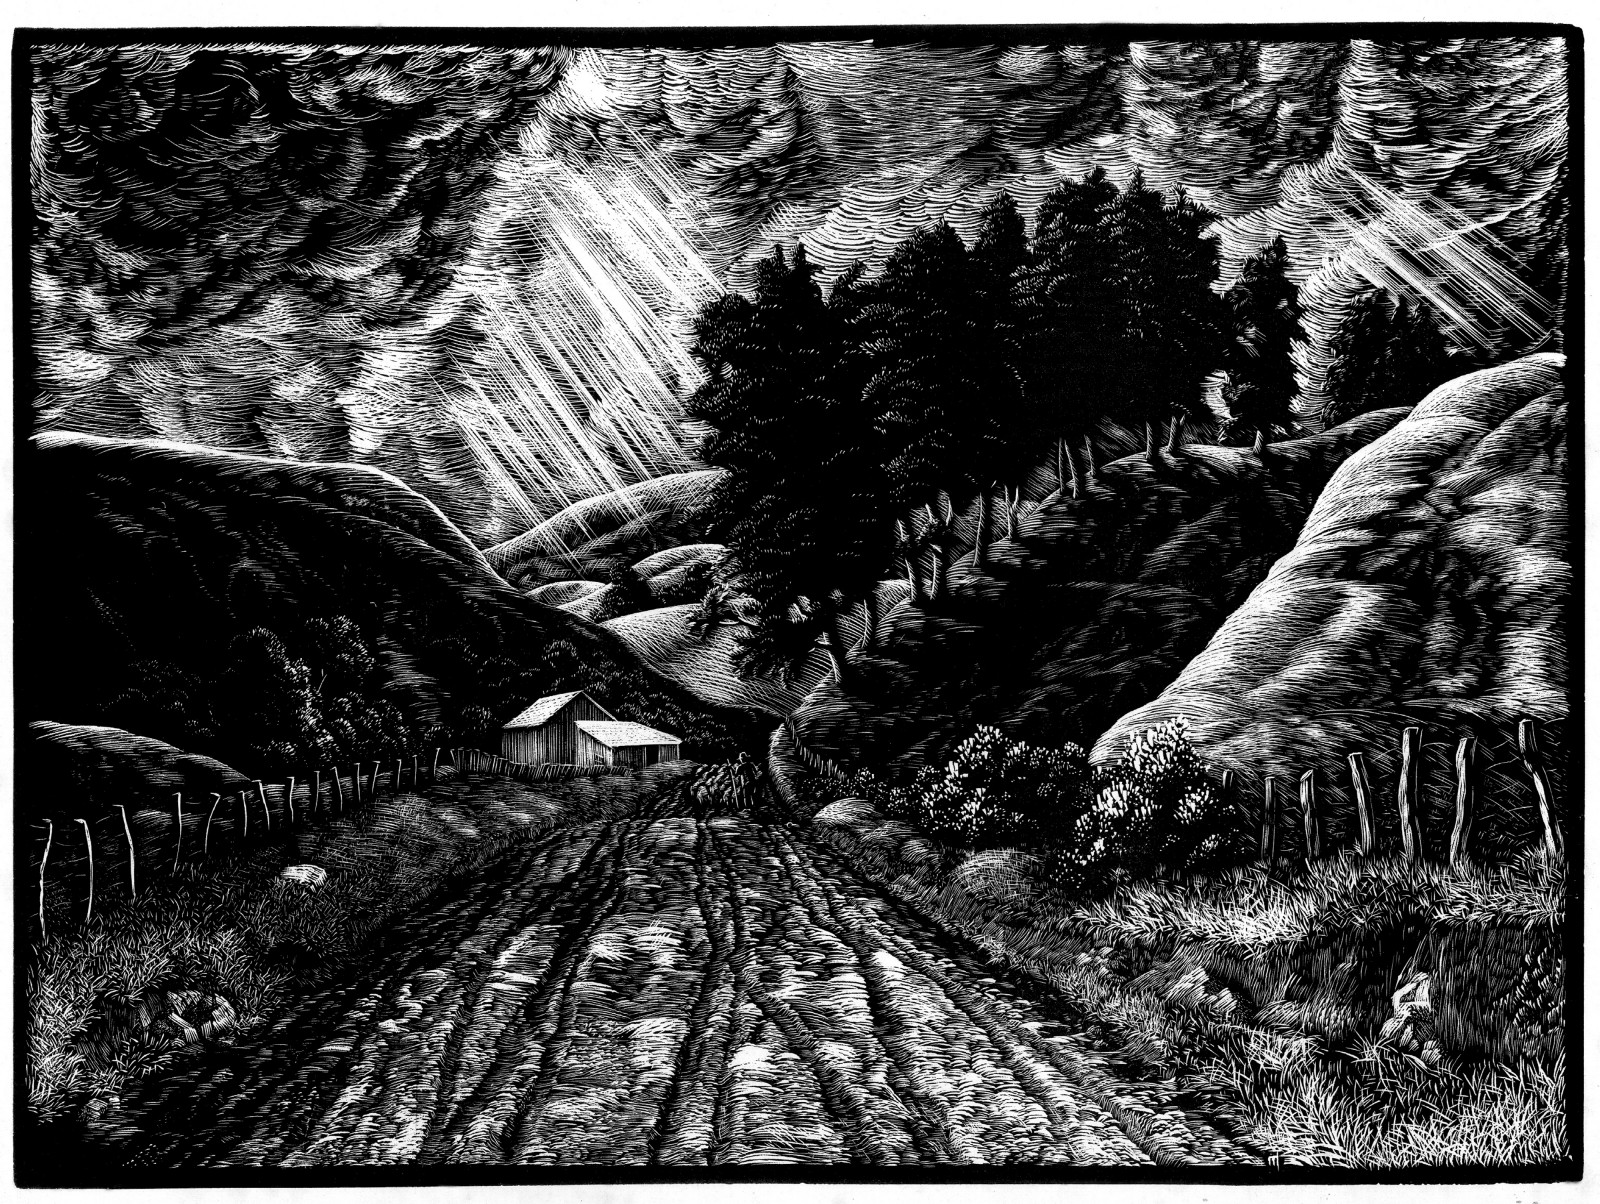 Dark Valley, 1937, was his very first wood engraving, started in printmaking classes at Wellington Technical College. Taylor wasn't happy with the result, and did no further wood engravings for eight years, until he felt he had a greater mastery of perspective and technique.